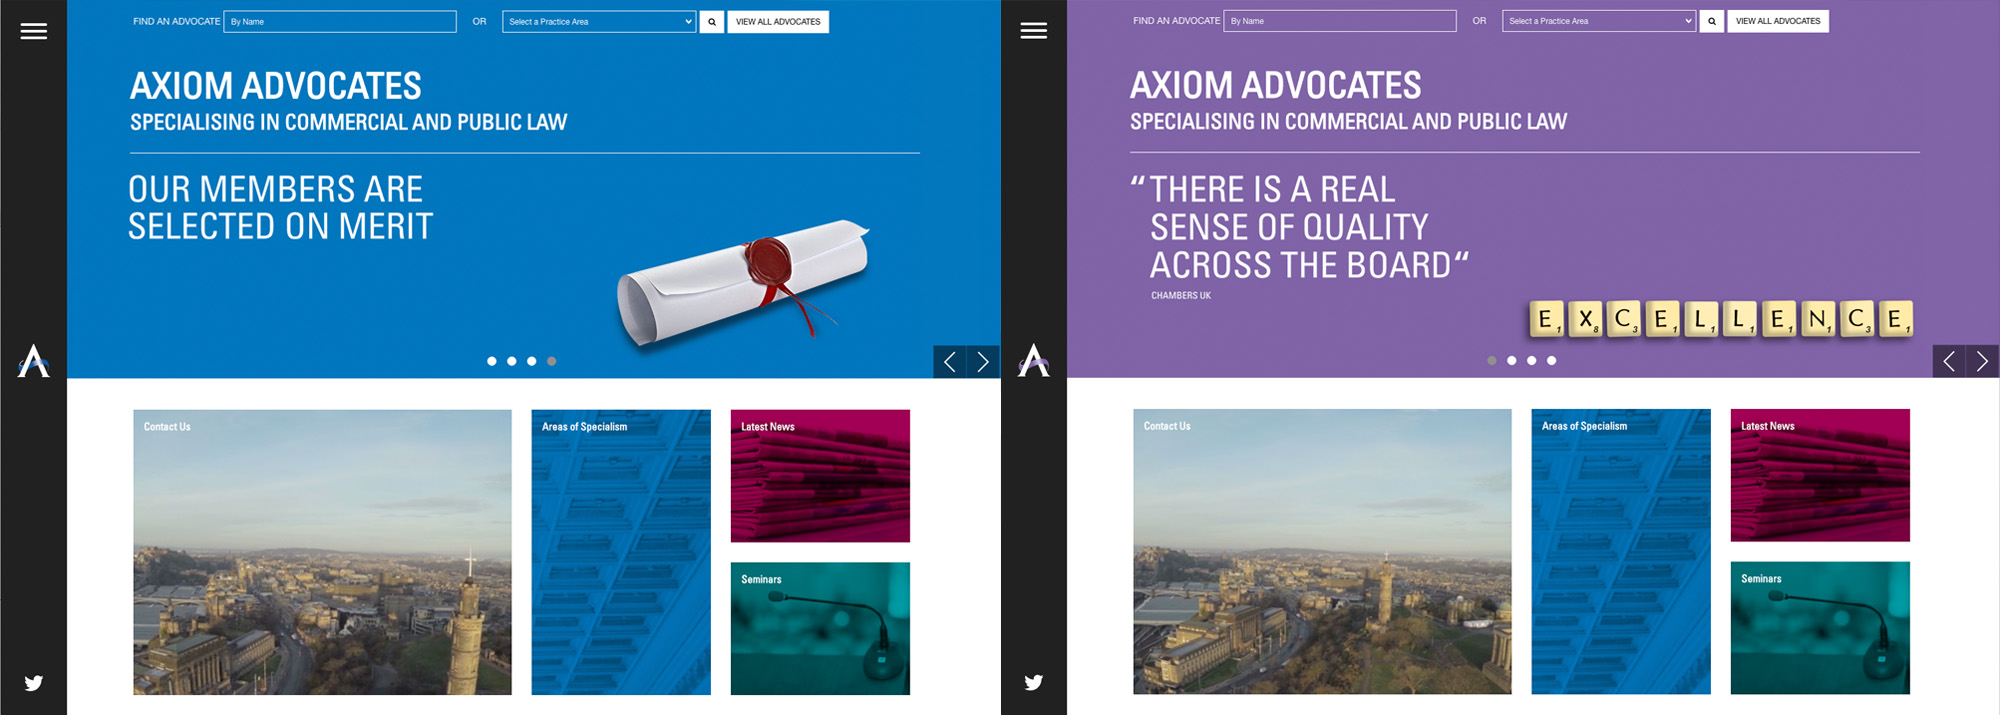 Axiom Advocates